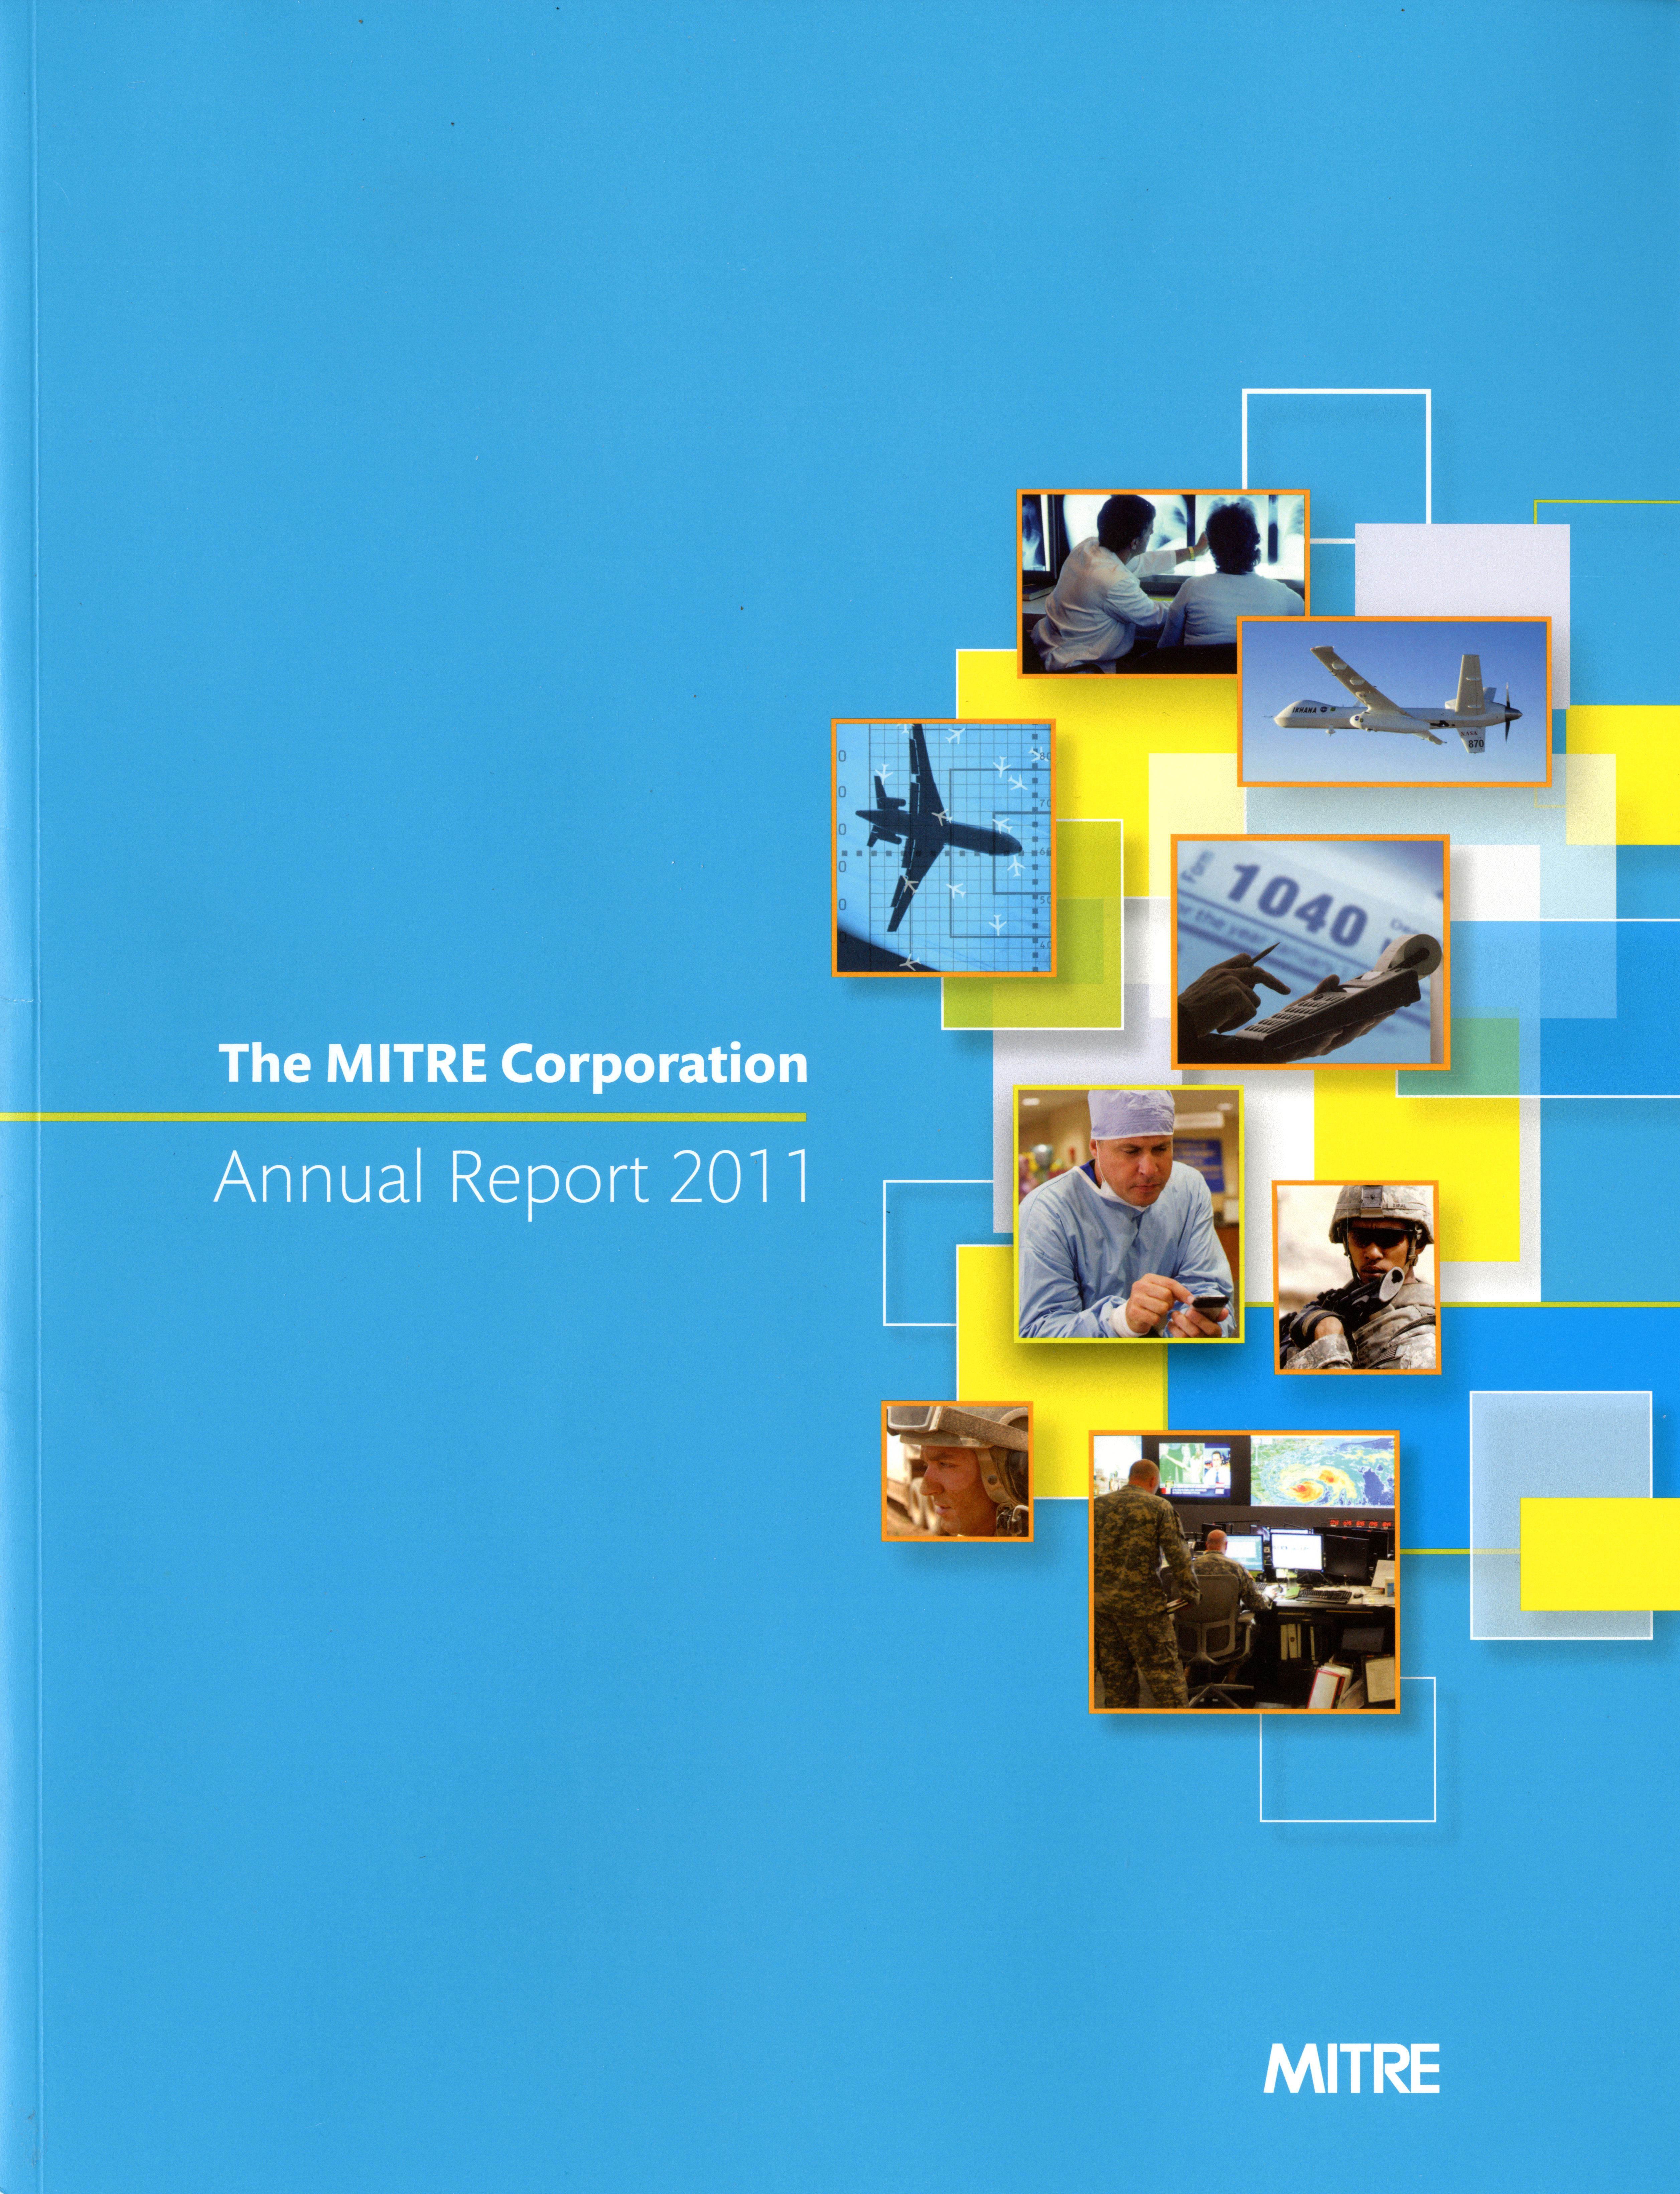 LACP 2011 Vision Awards Annual Report Competition The MITRE